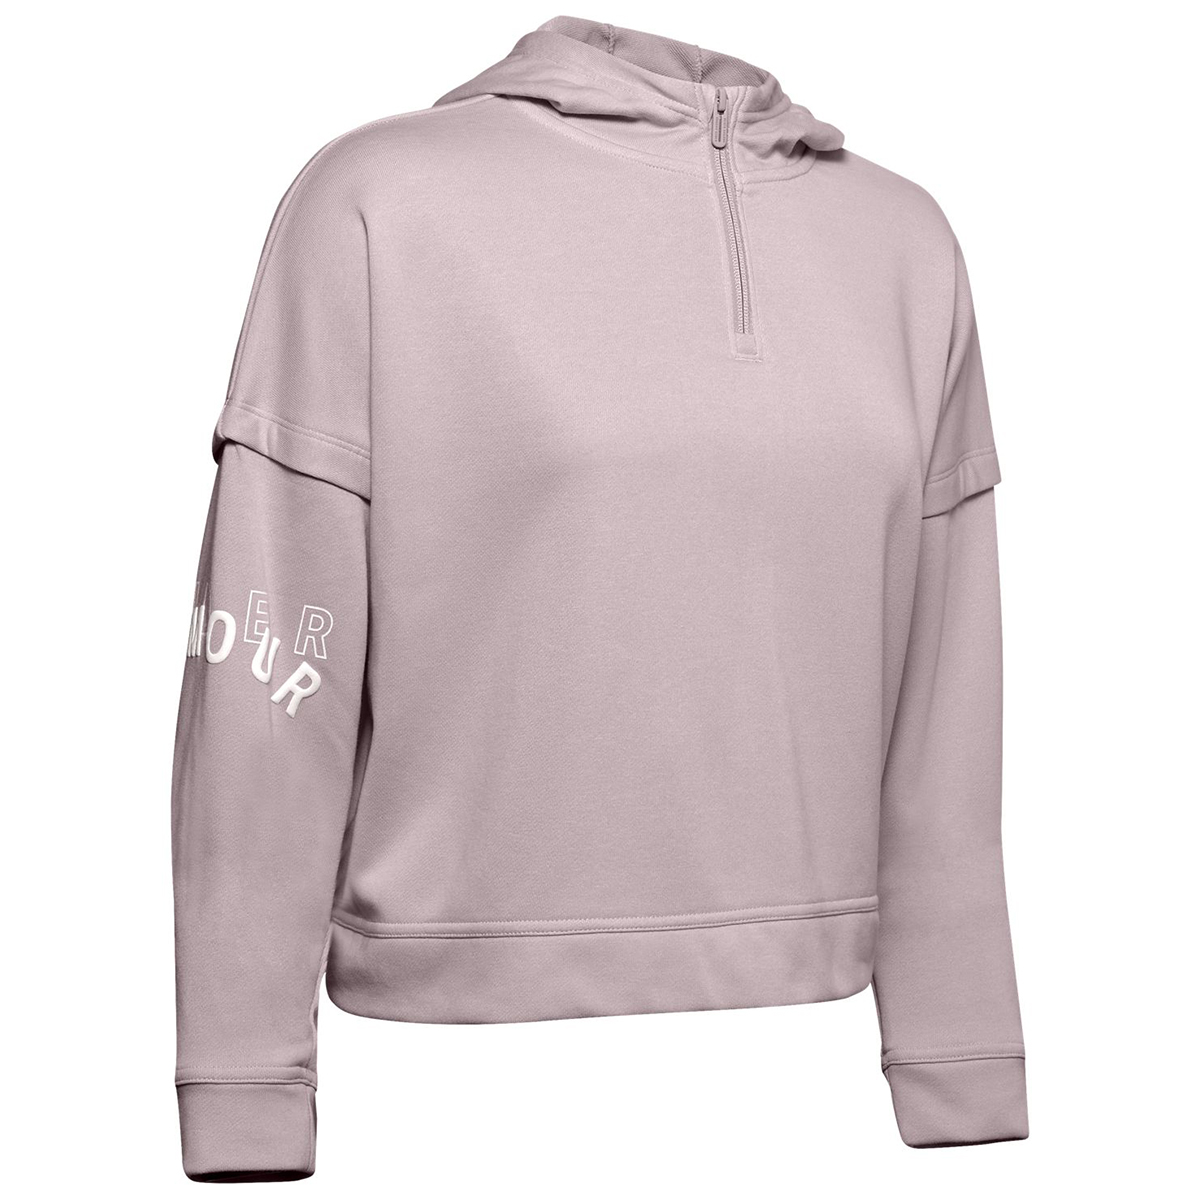 Under Armour Women's Ua Rival Terry Hoodie - Red, XL